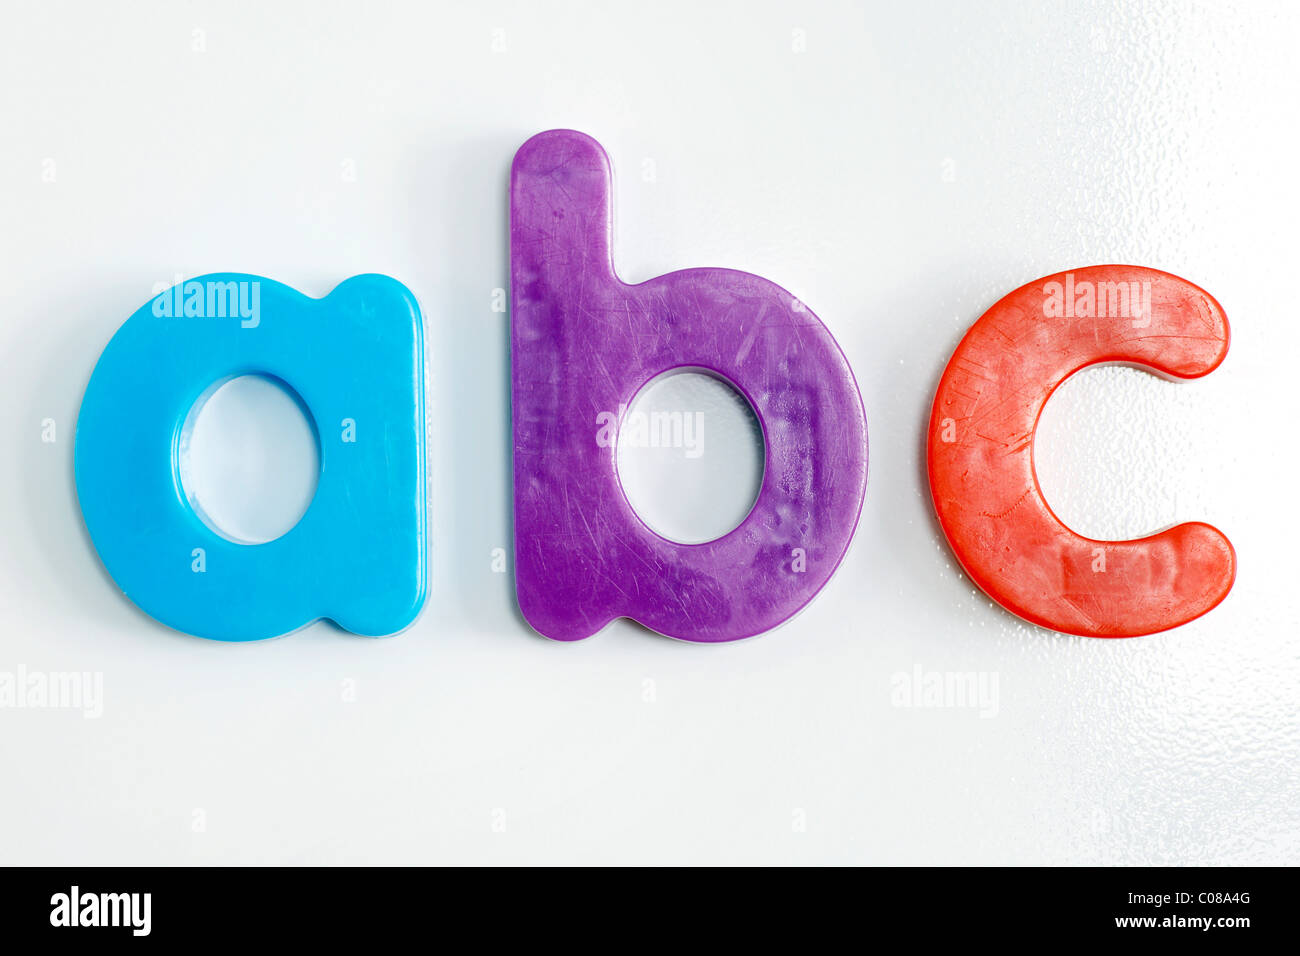 Fridge magnet: colorful plastic alphabet letters on textured white refrigerator. Stock Photo